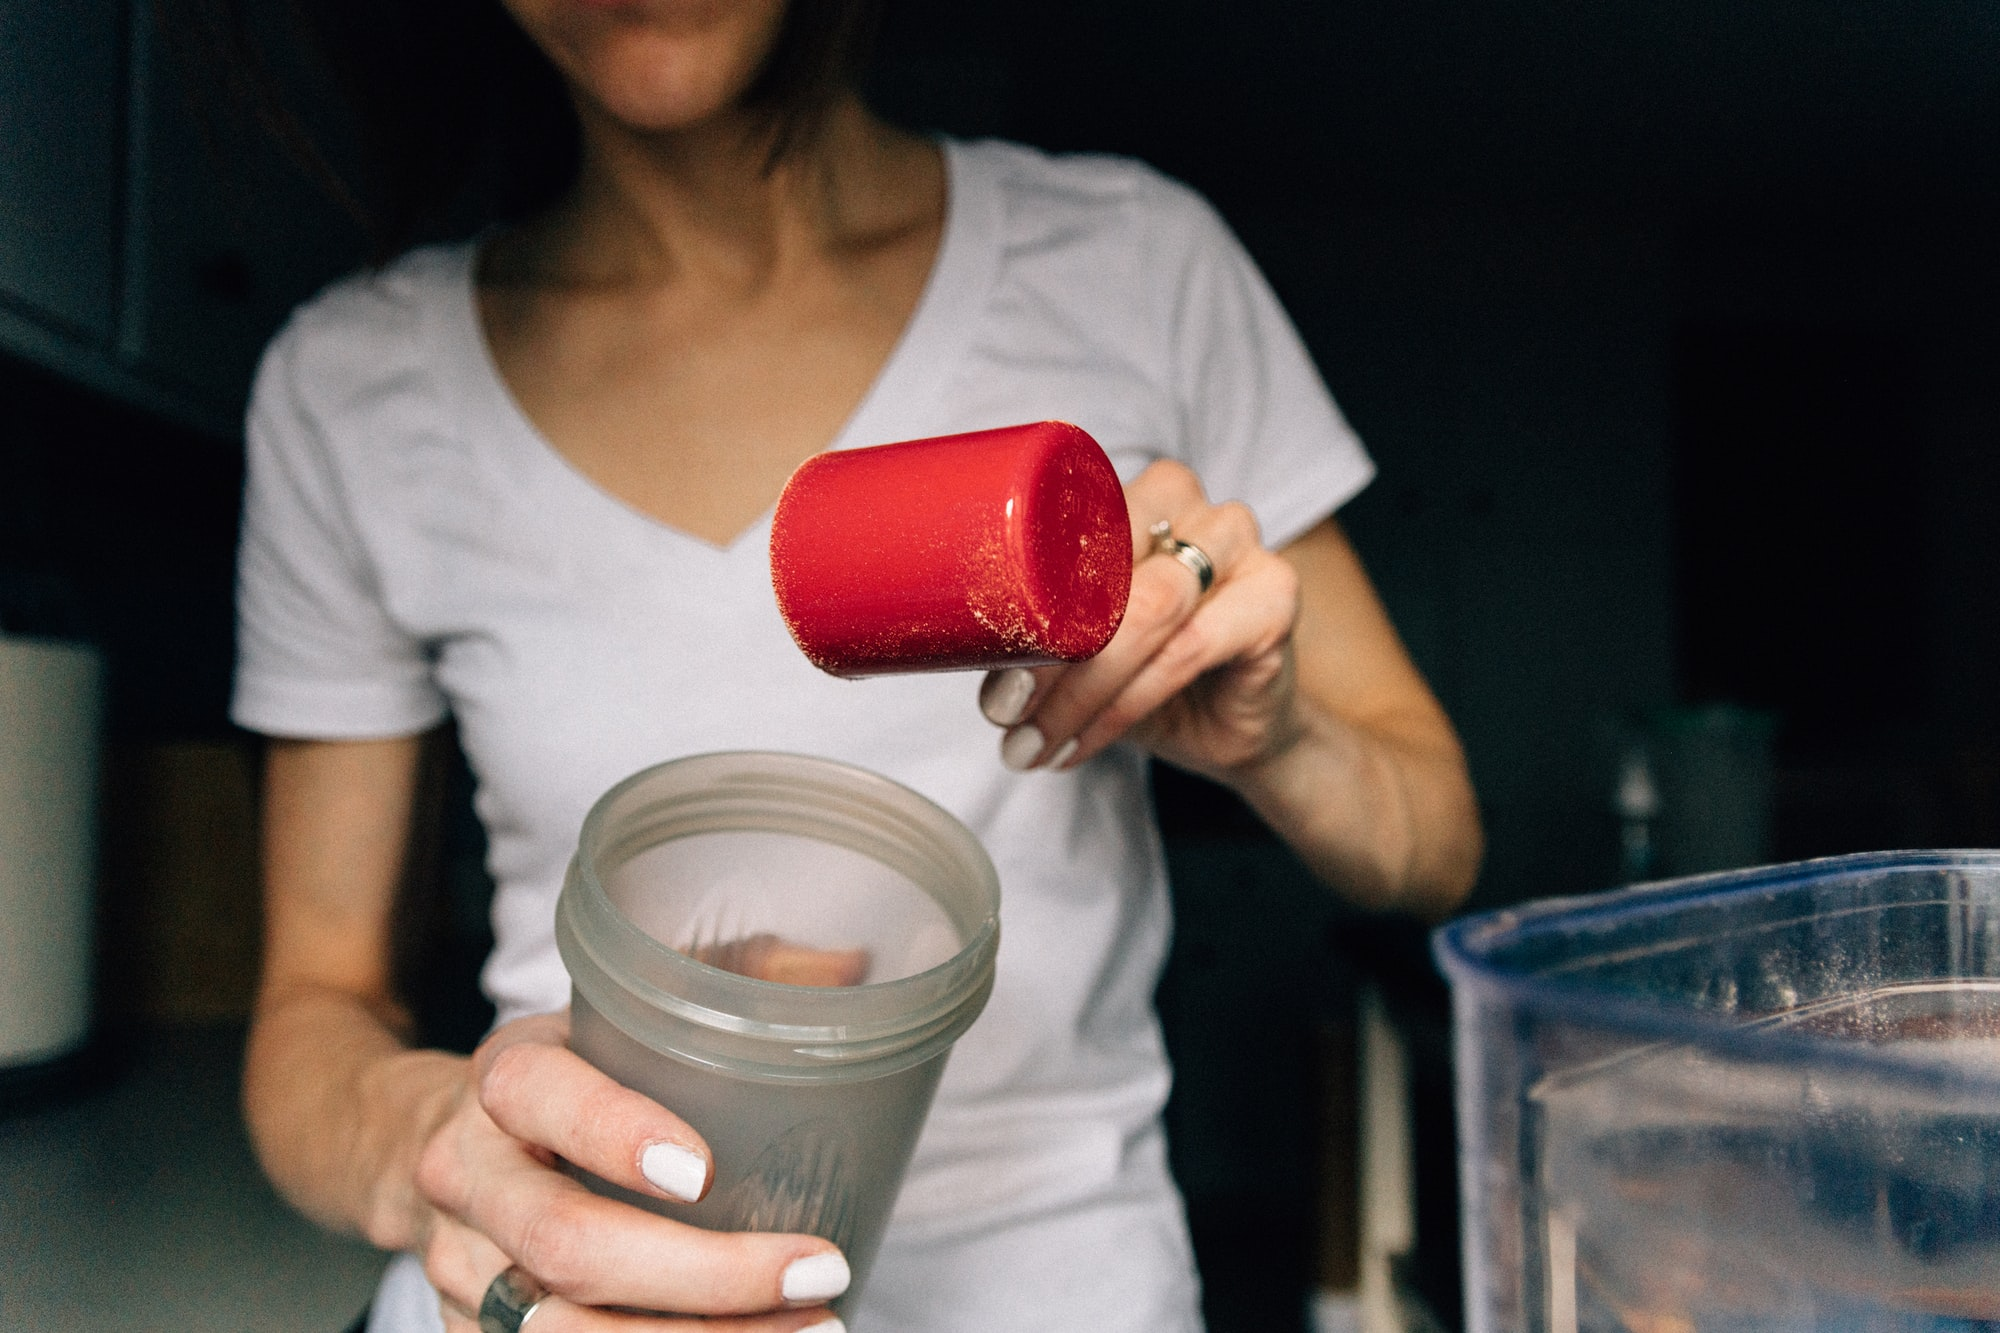 Morning Routine: Pouring protein shake powder into a cup